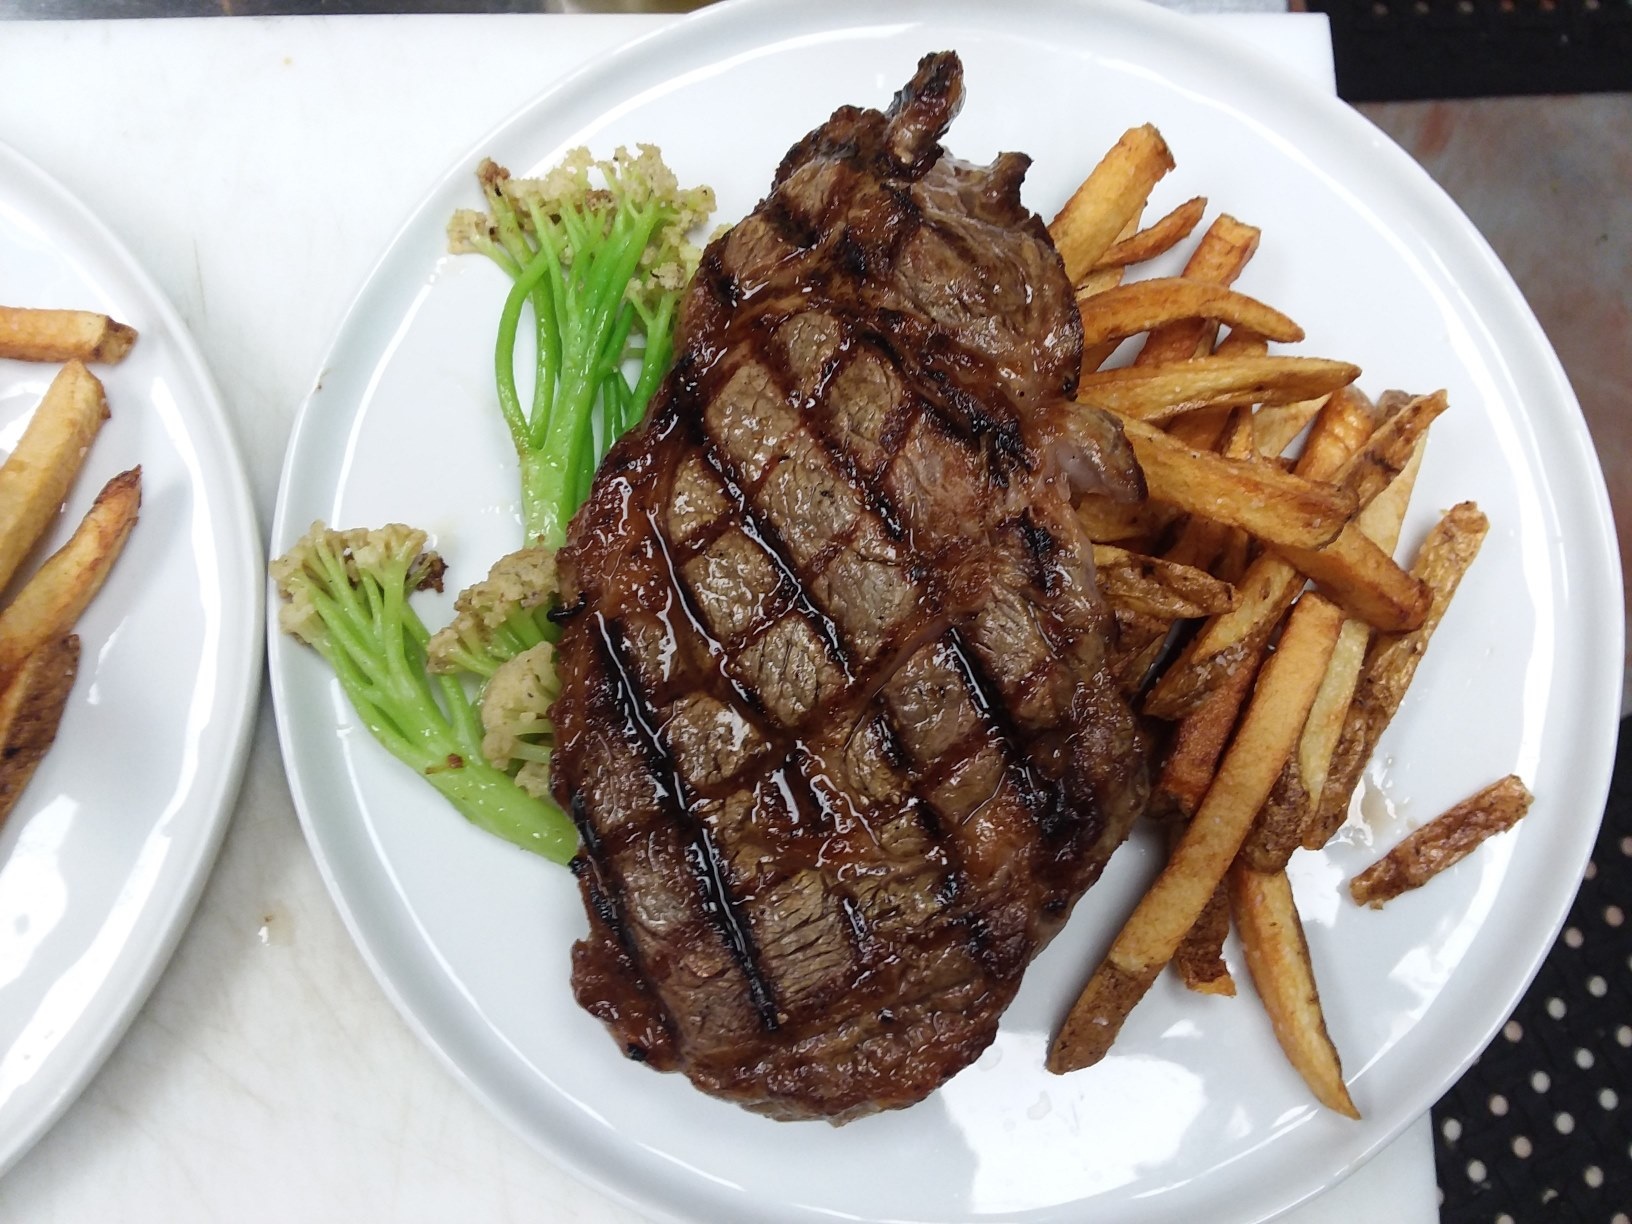 ribeye steak special with french fries